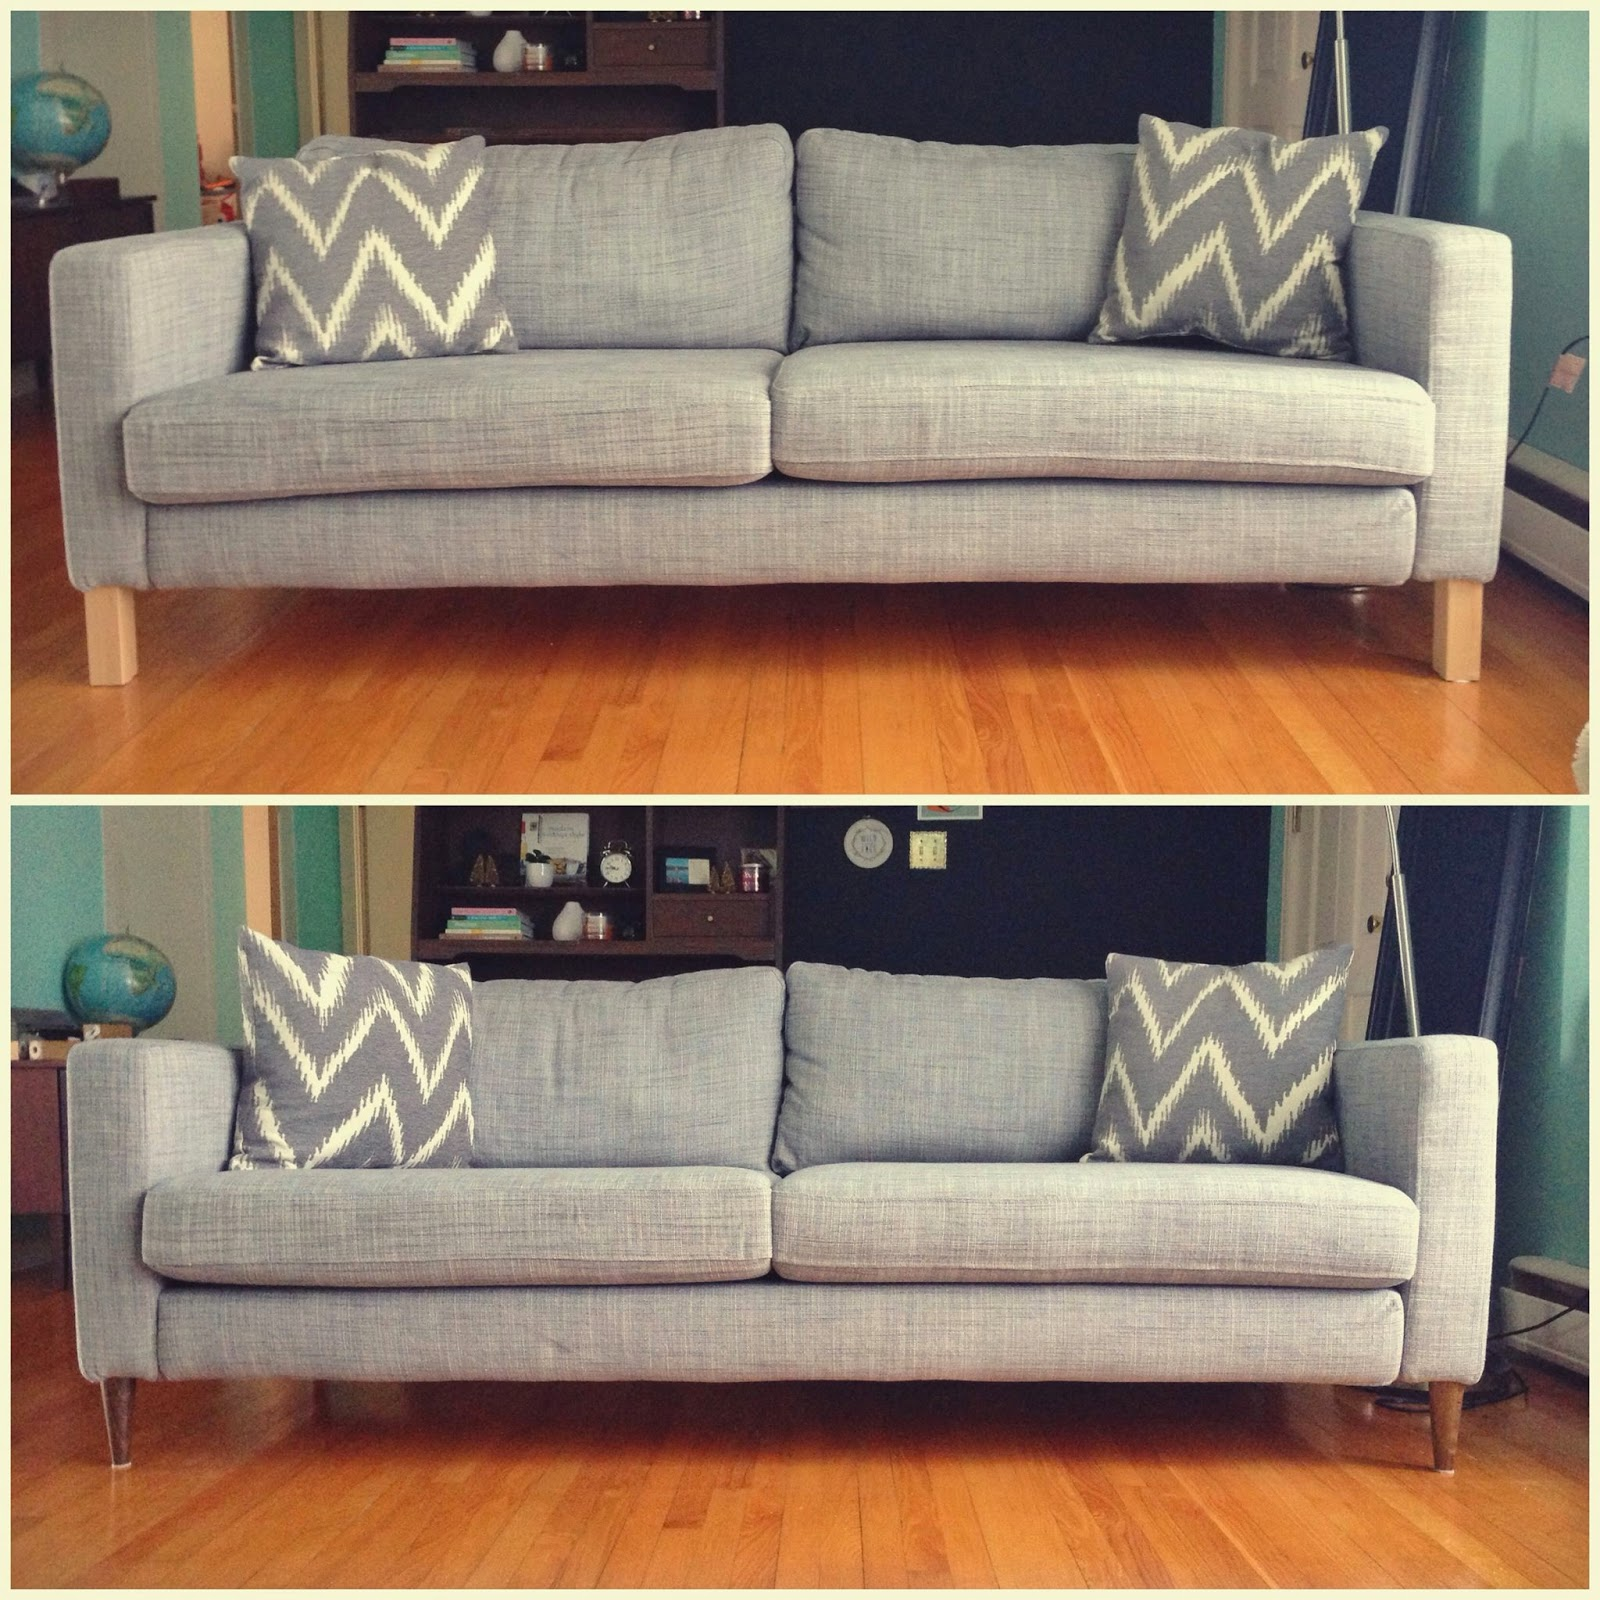 Ikea Sofa Hacks TheSofa